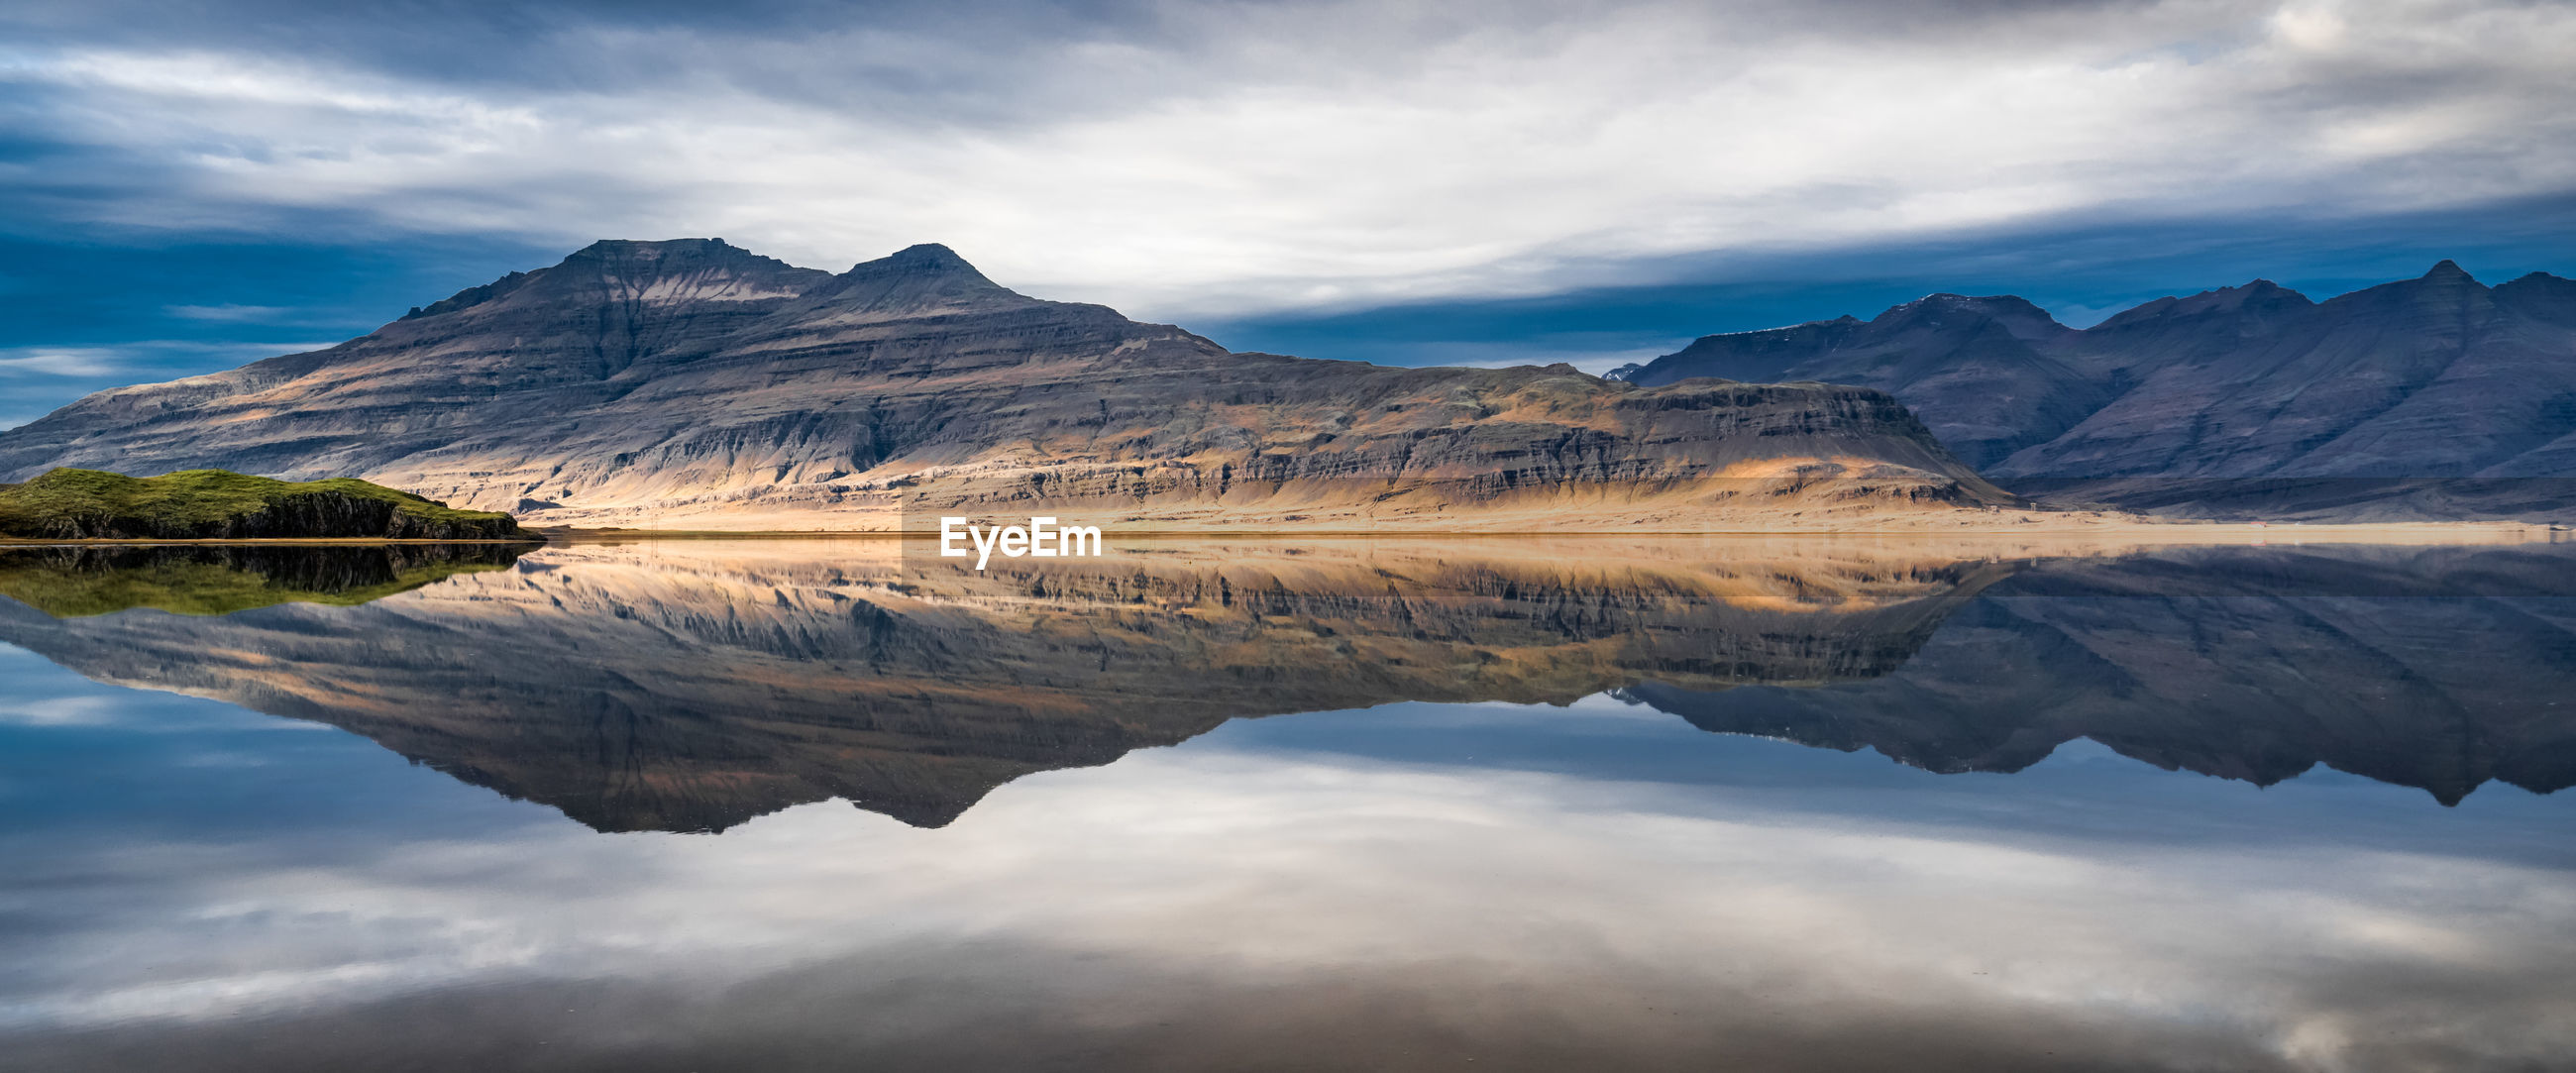 REFLECTION OF MOUNTAINS ON LAKE AGAINST SKY